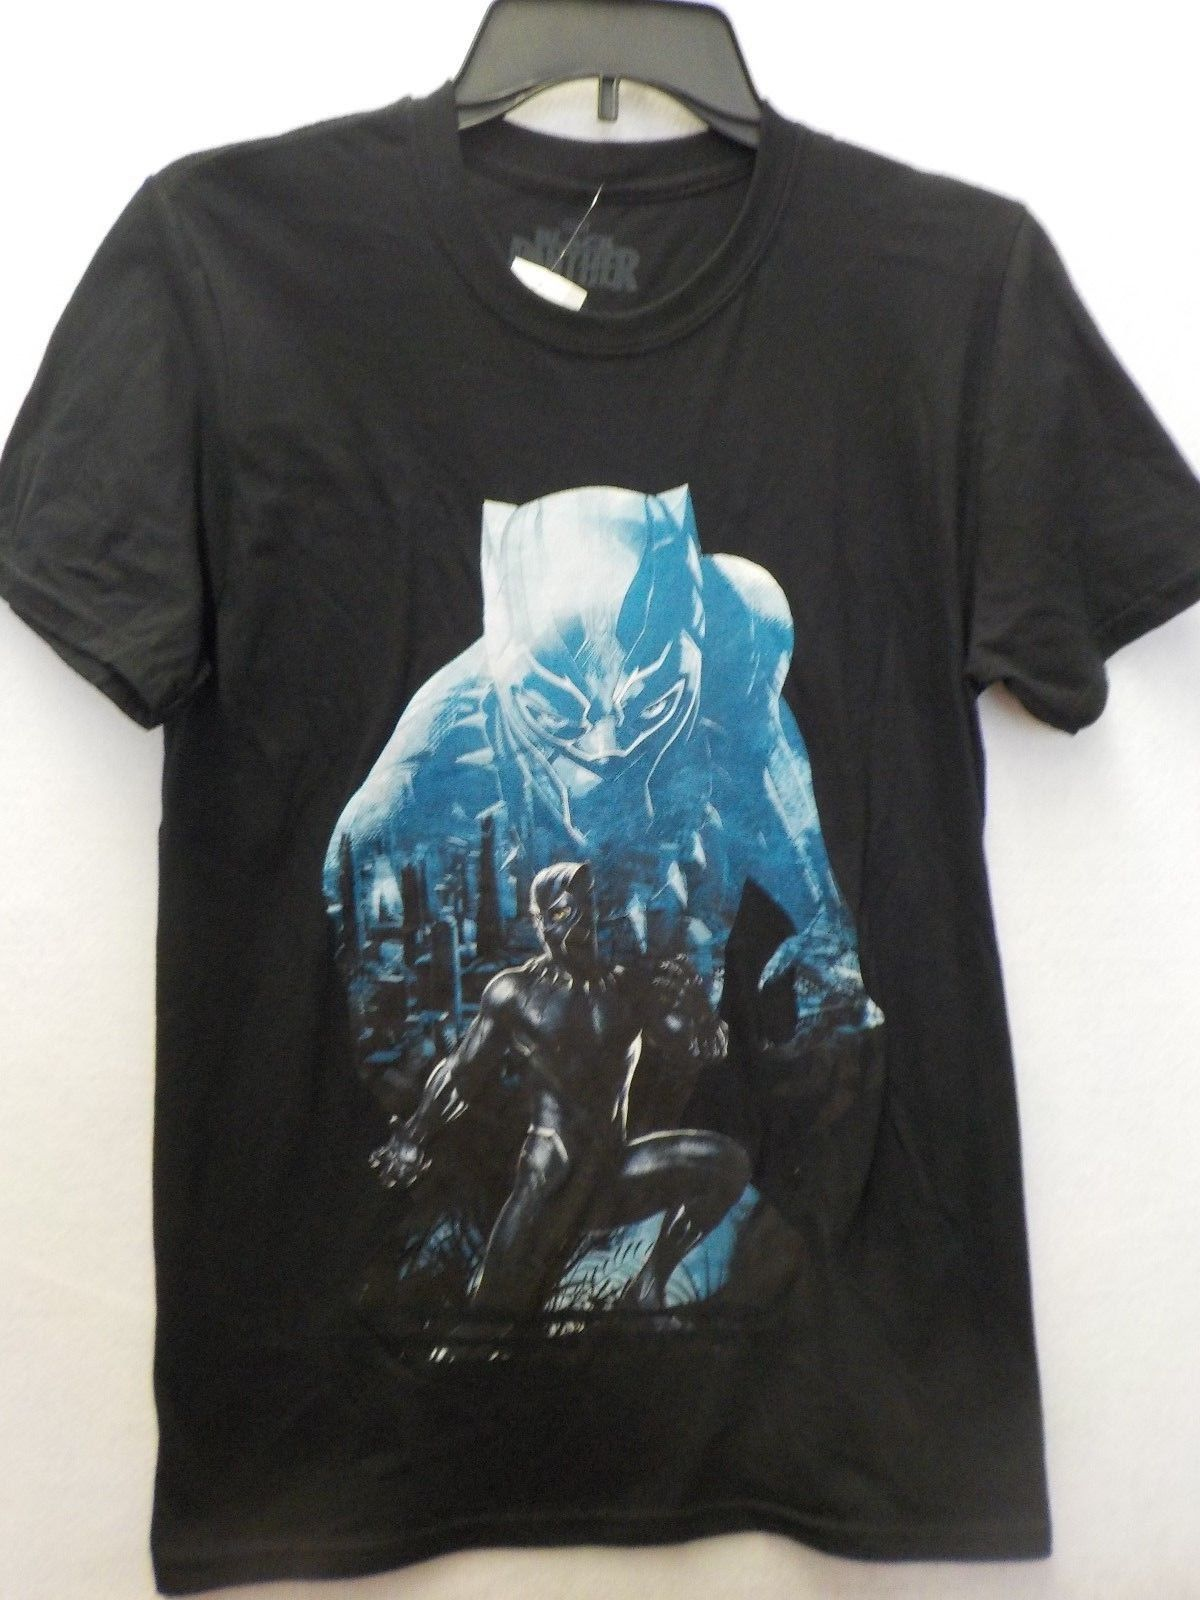 MENS SIZE SMALL MARVEL BLACK PANTHER GRAPHIC BLACK TSHIRT NEW #11333 Top Tee For Sale Natural Cotton Tee Shirts